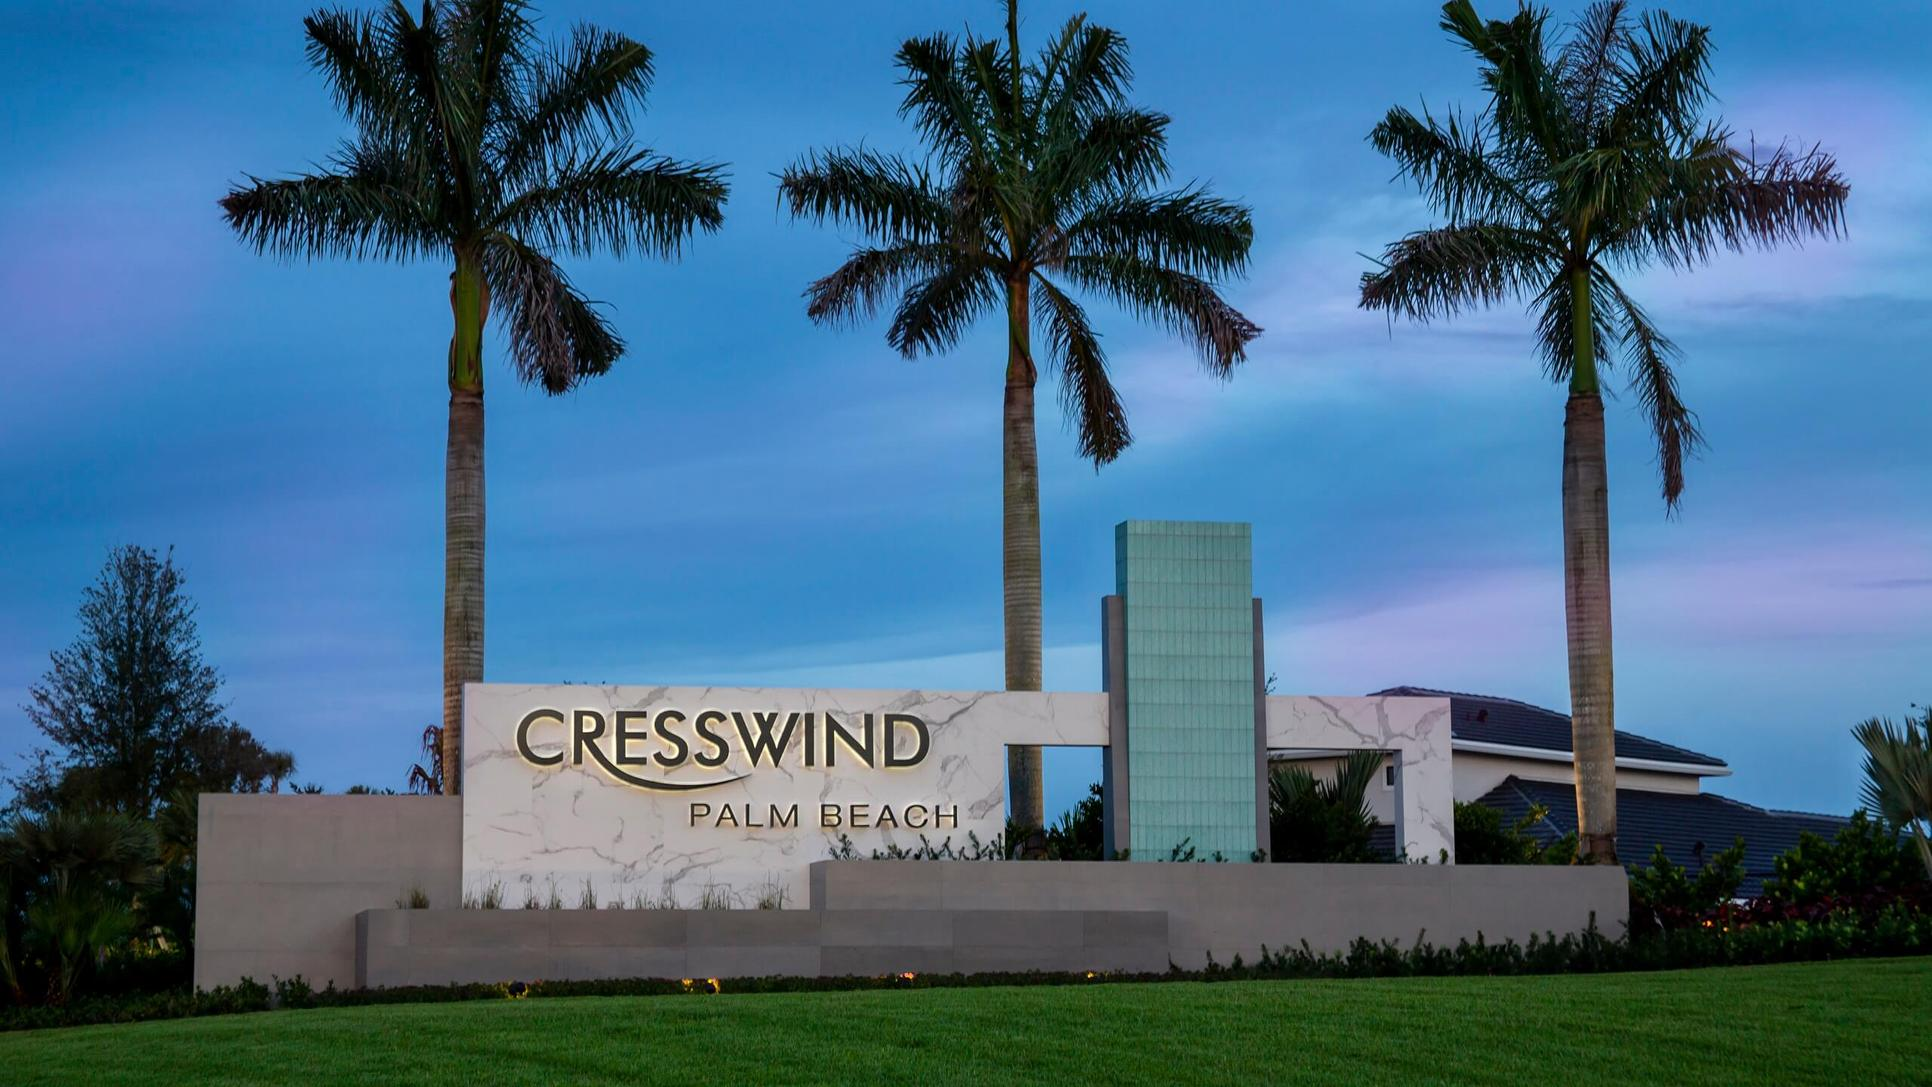 Cresswind Palm Beach,33470